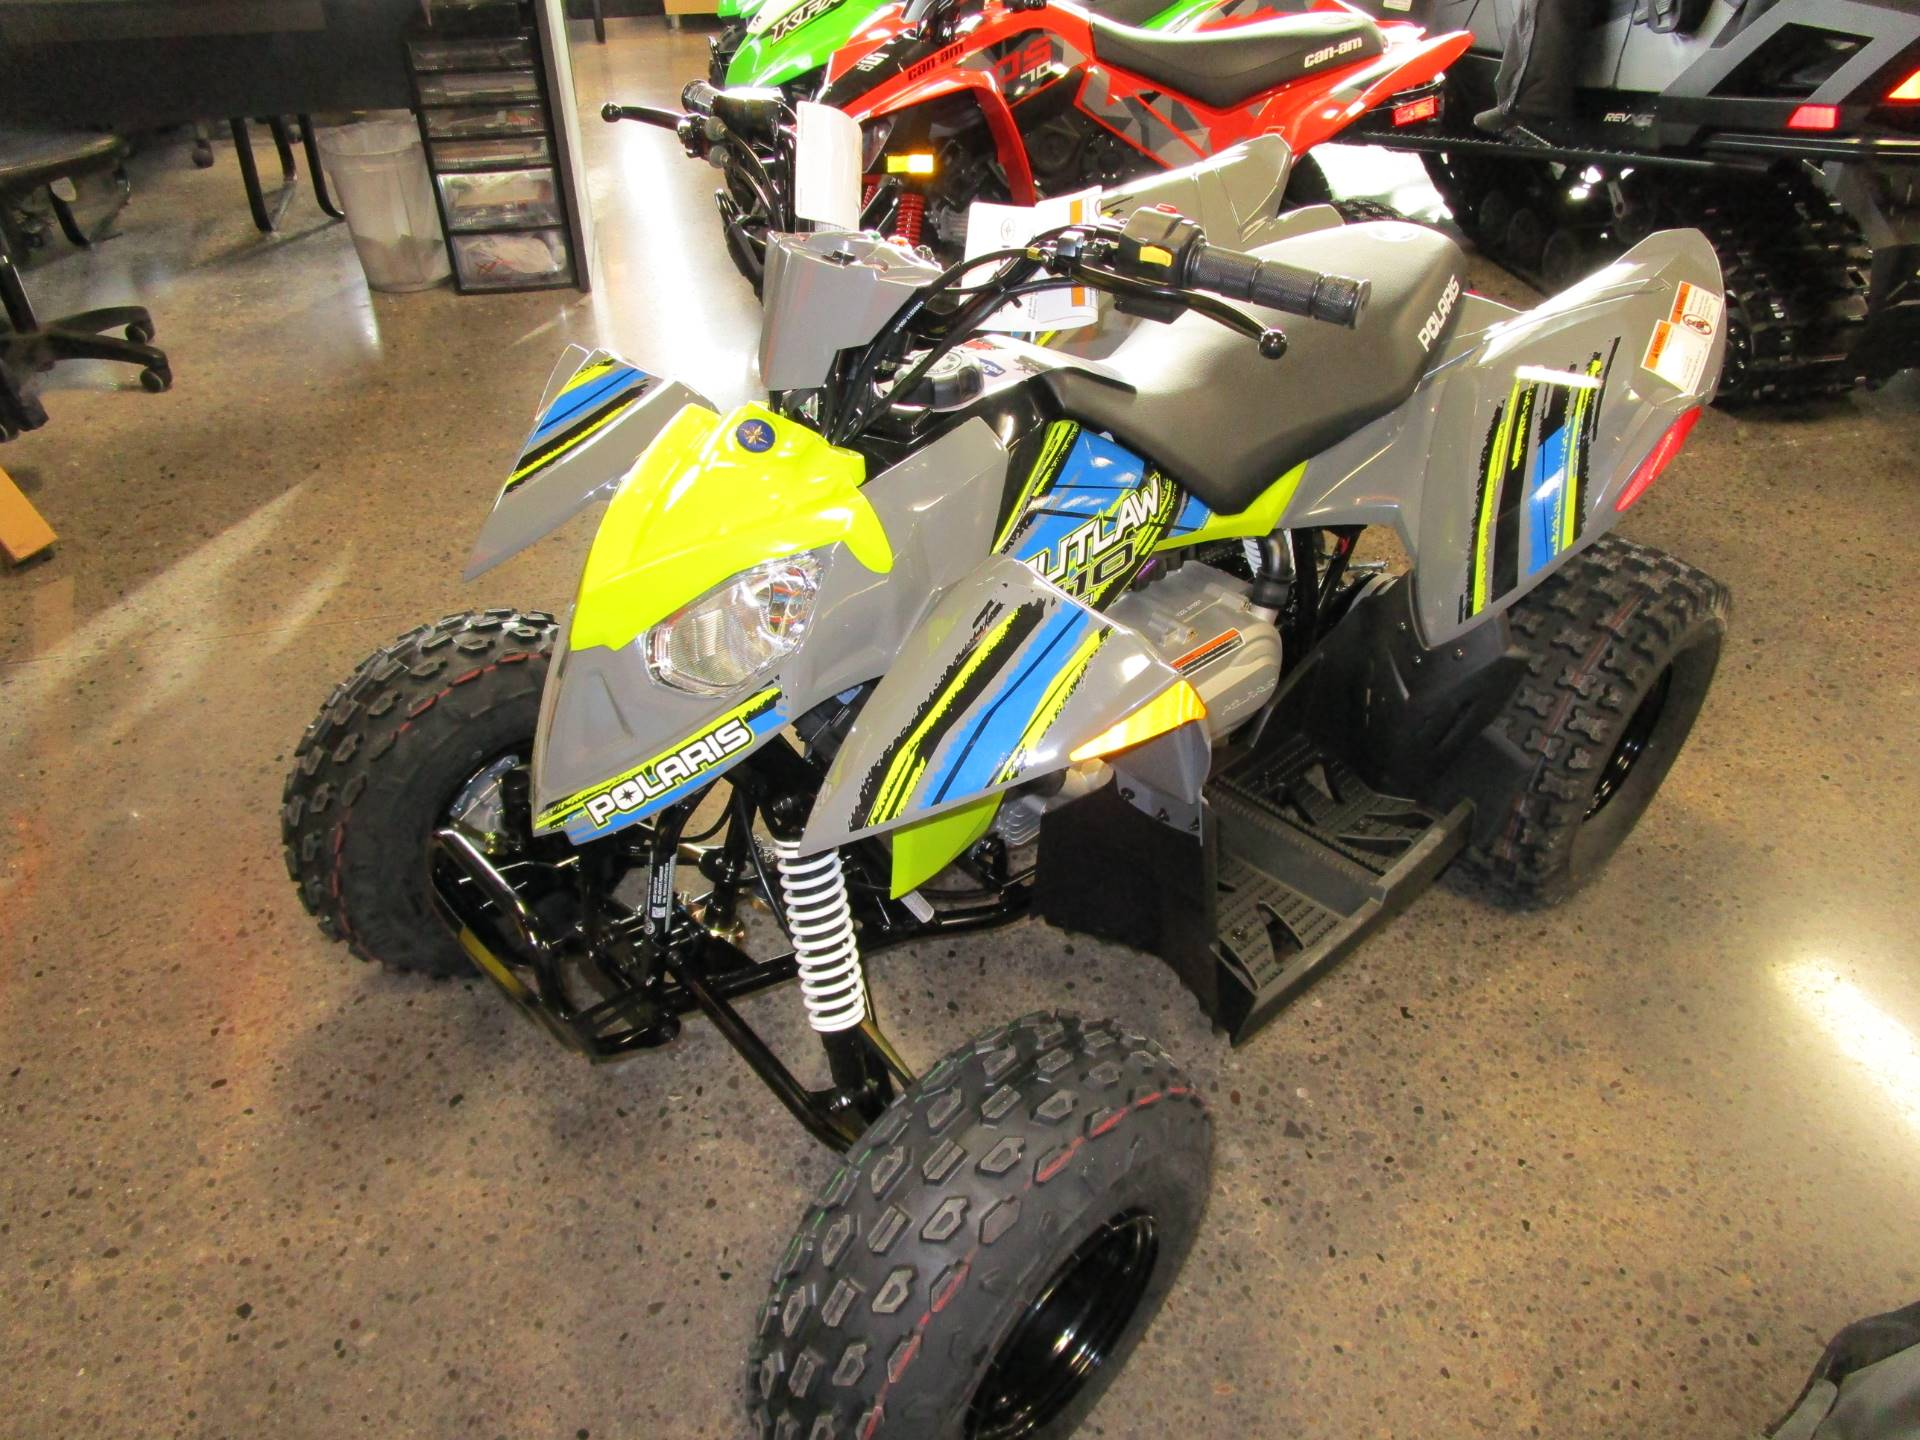 2017 Polaris Outlaw 110 in Brookfield, Wisconsin